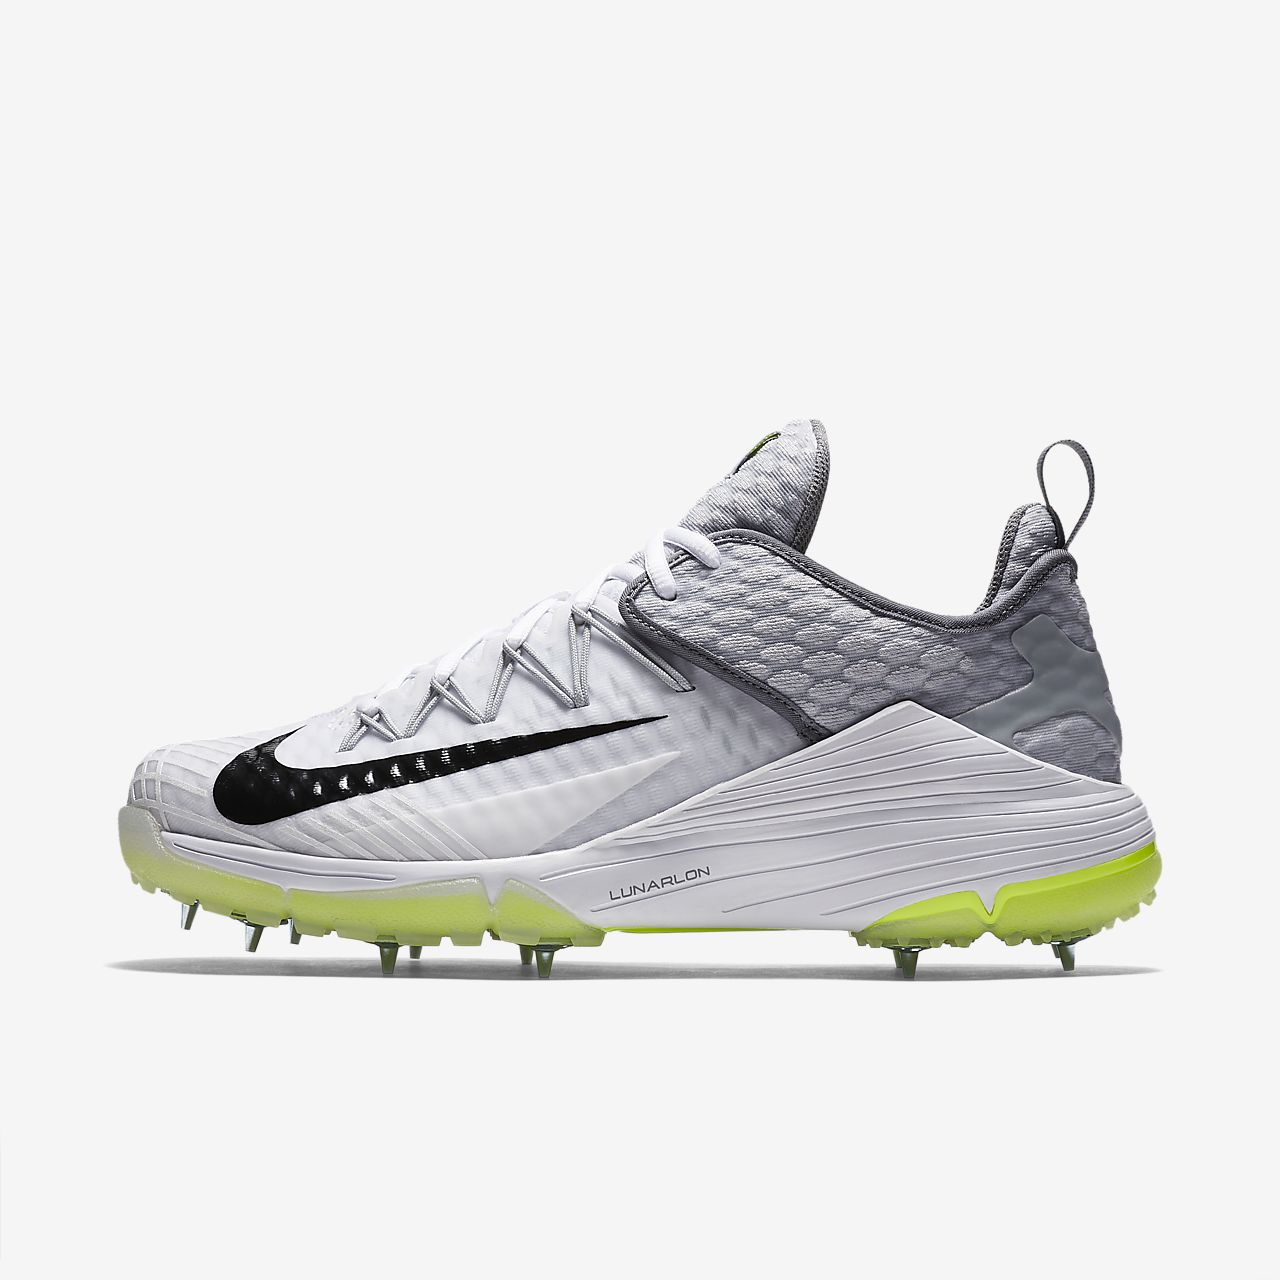 ... Nike Lunar Audacity Men's Cricket Shoe